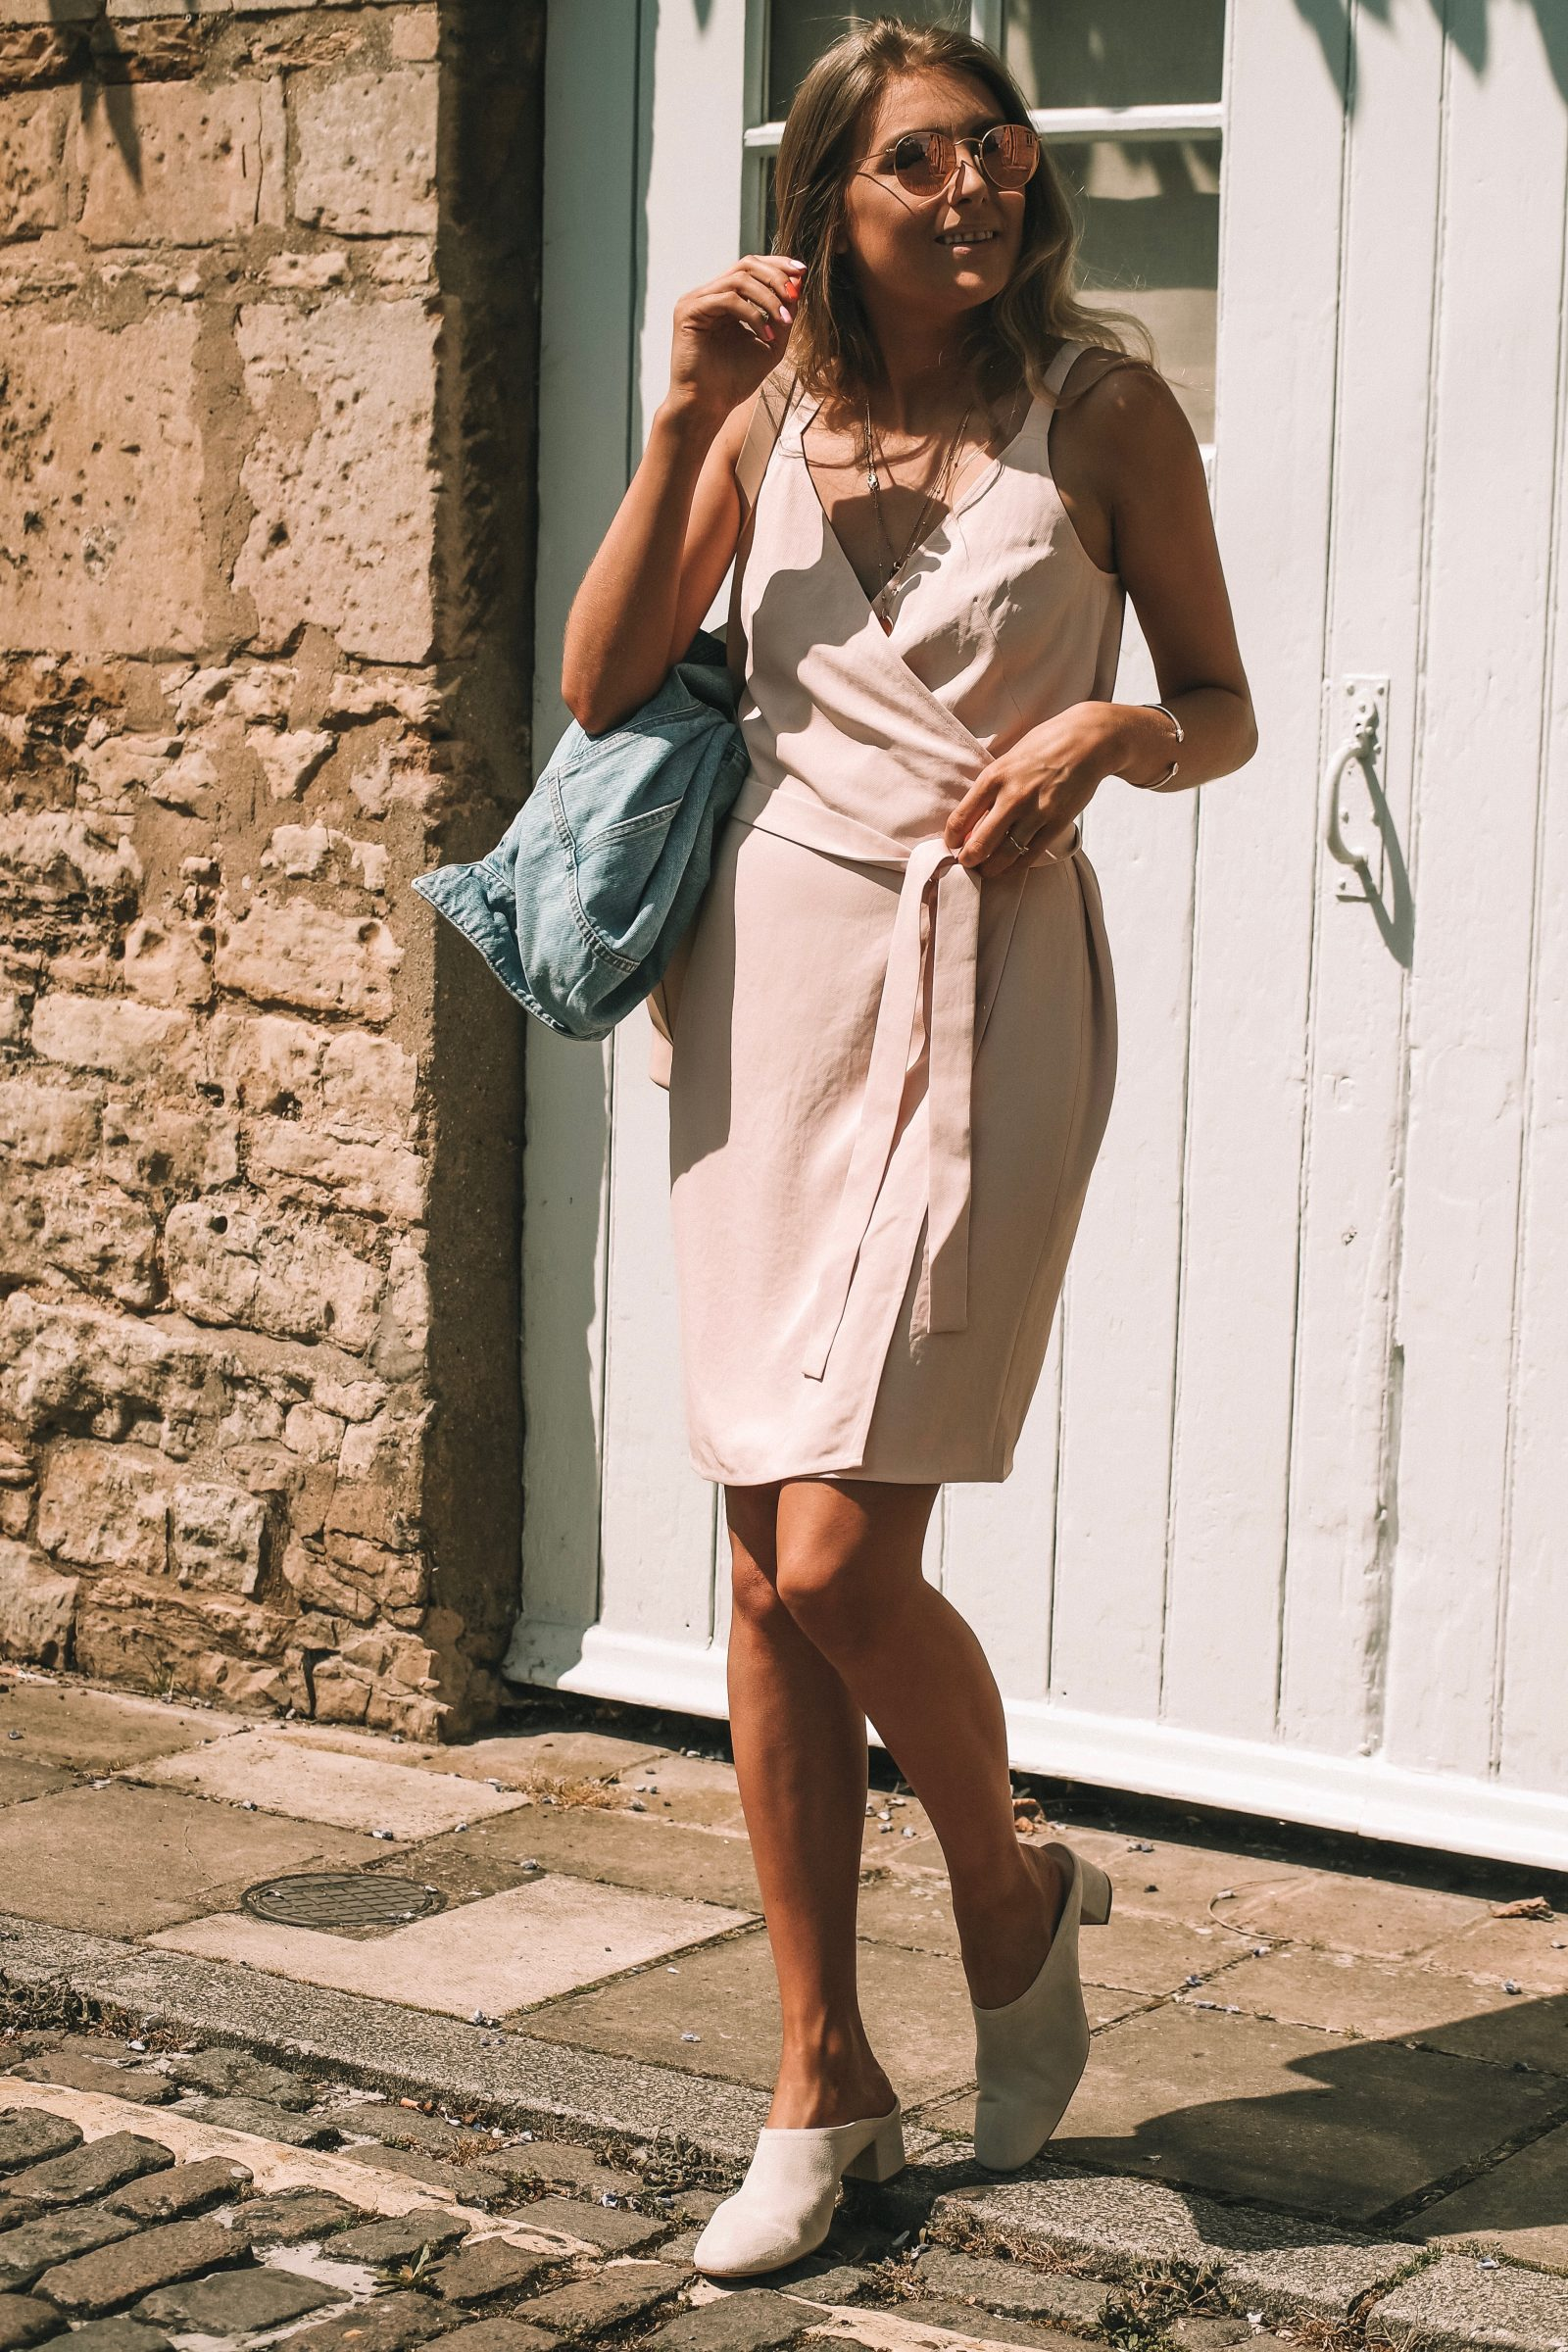 Everlane Day Market Tote - Summer Street Style - Blush Wrap Dress